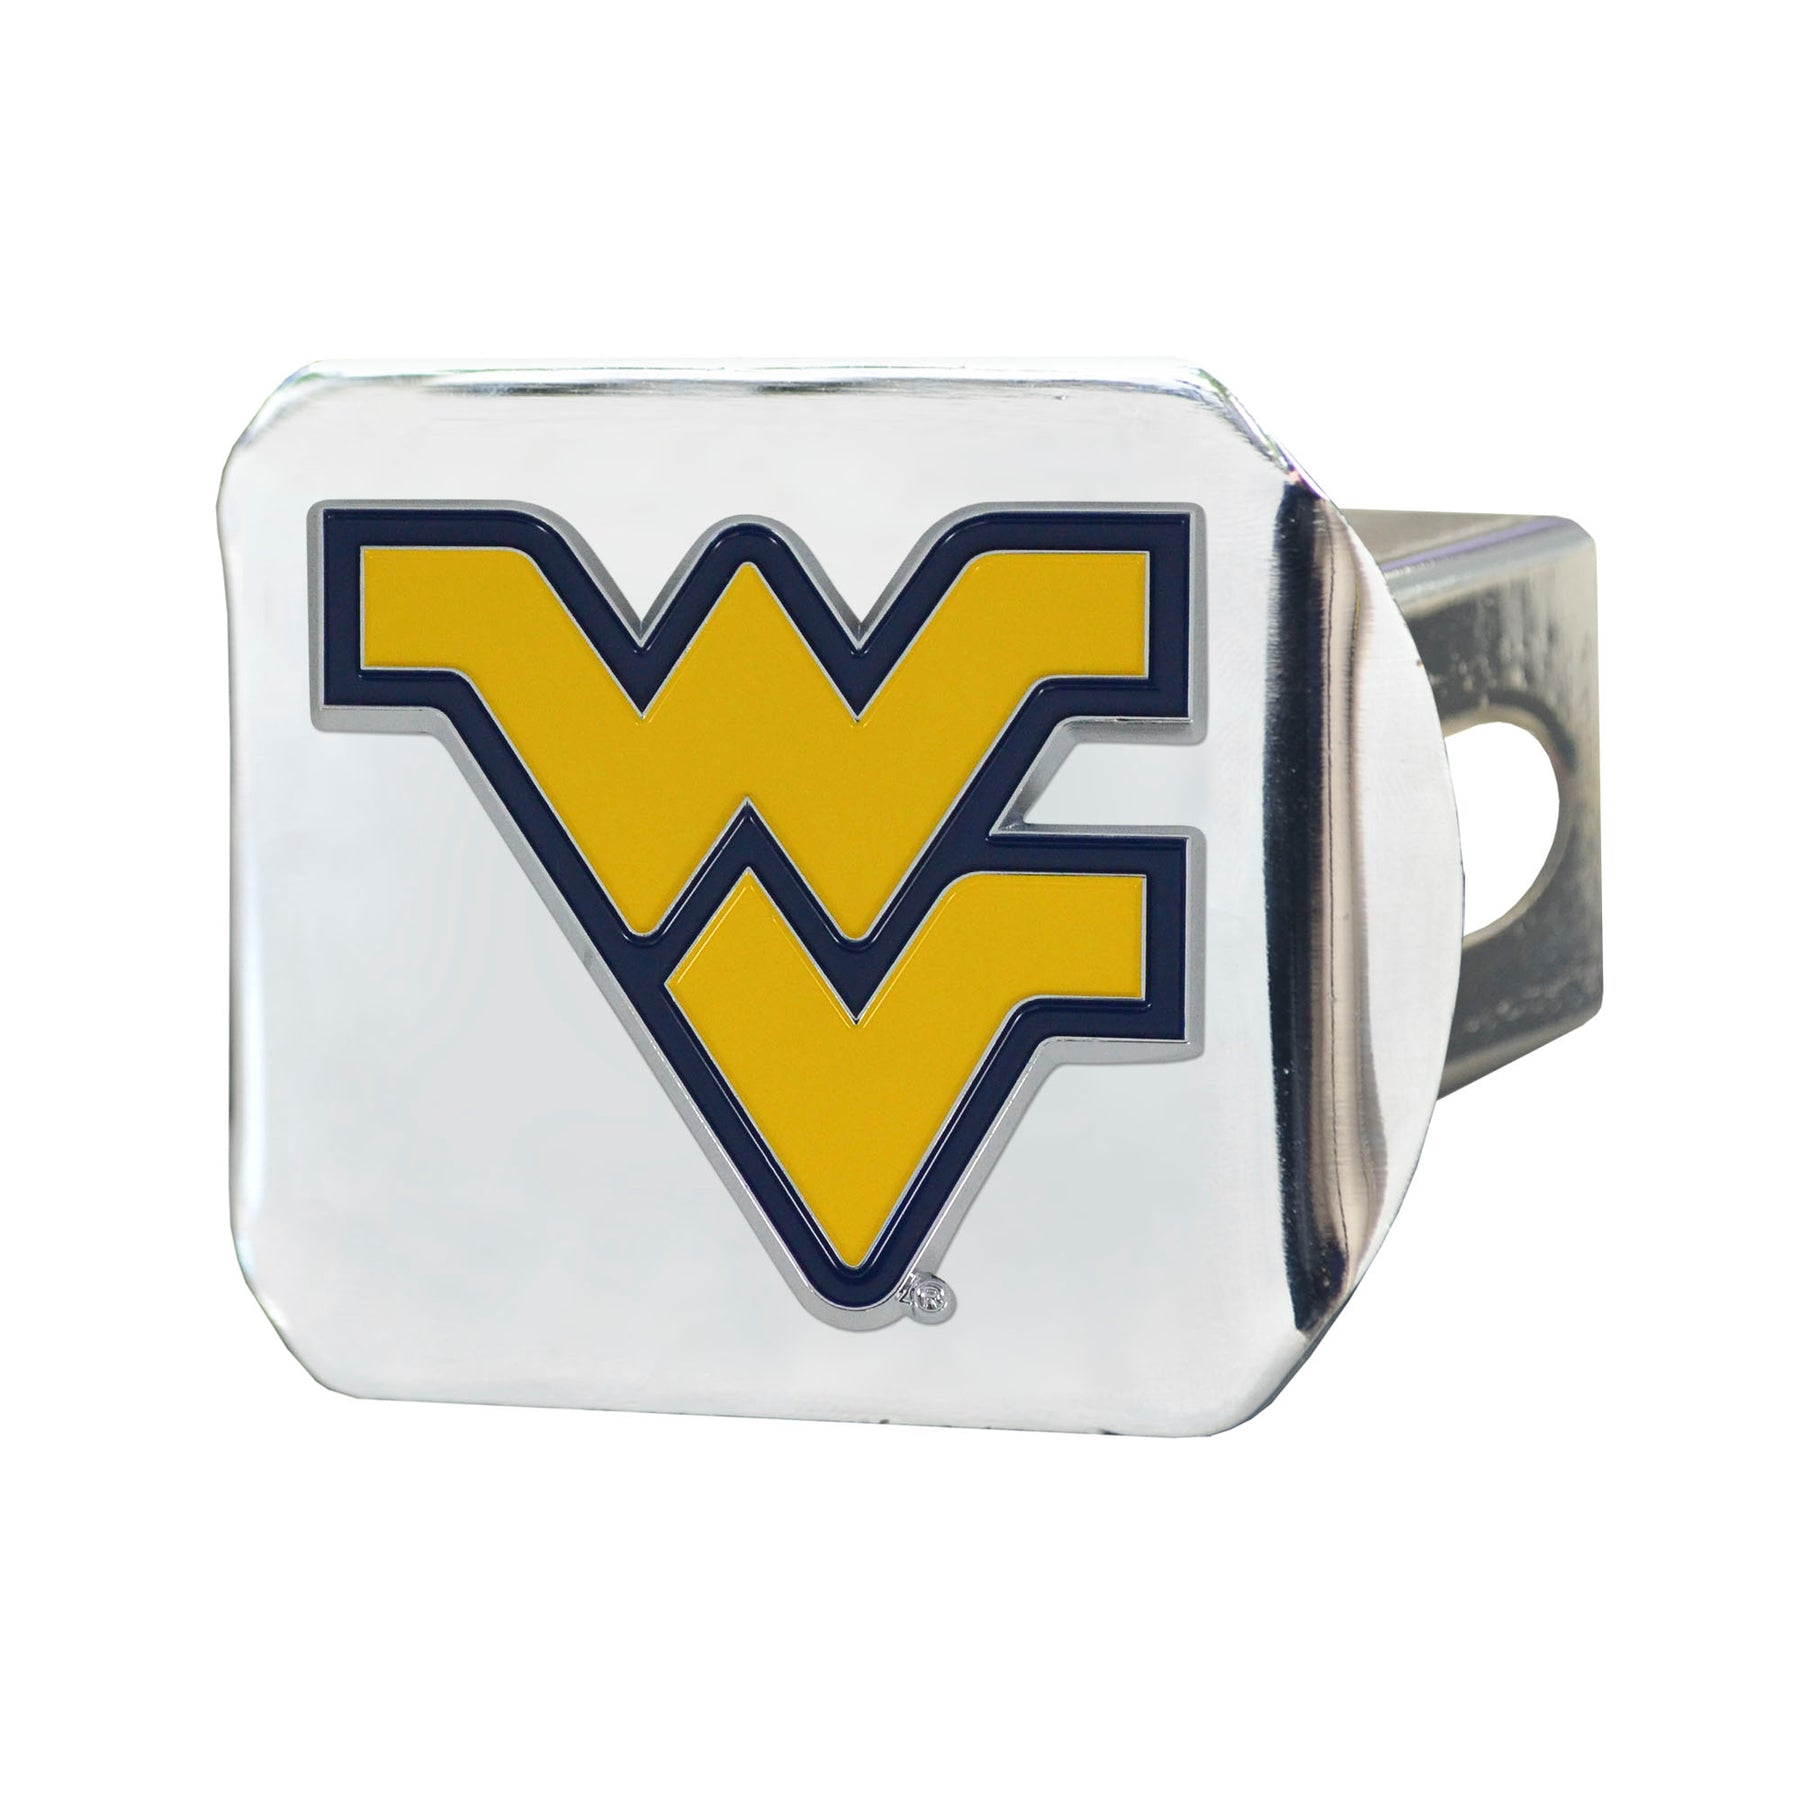 Final Touch Gifts University of West Virginia Mountaineers Logo Charm Fits European Style Large Hole Bead Bracelets